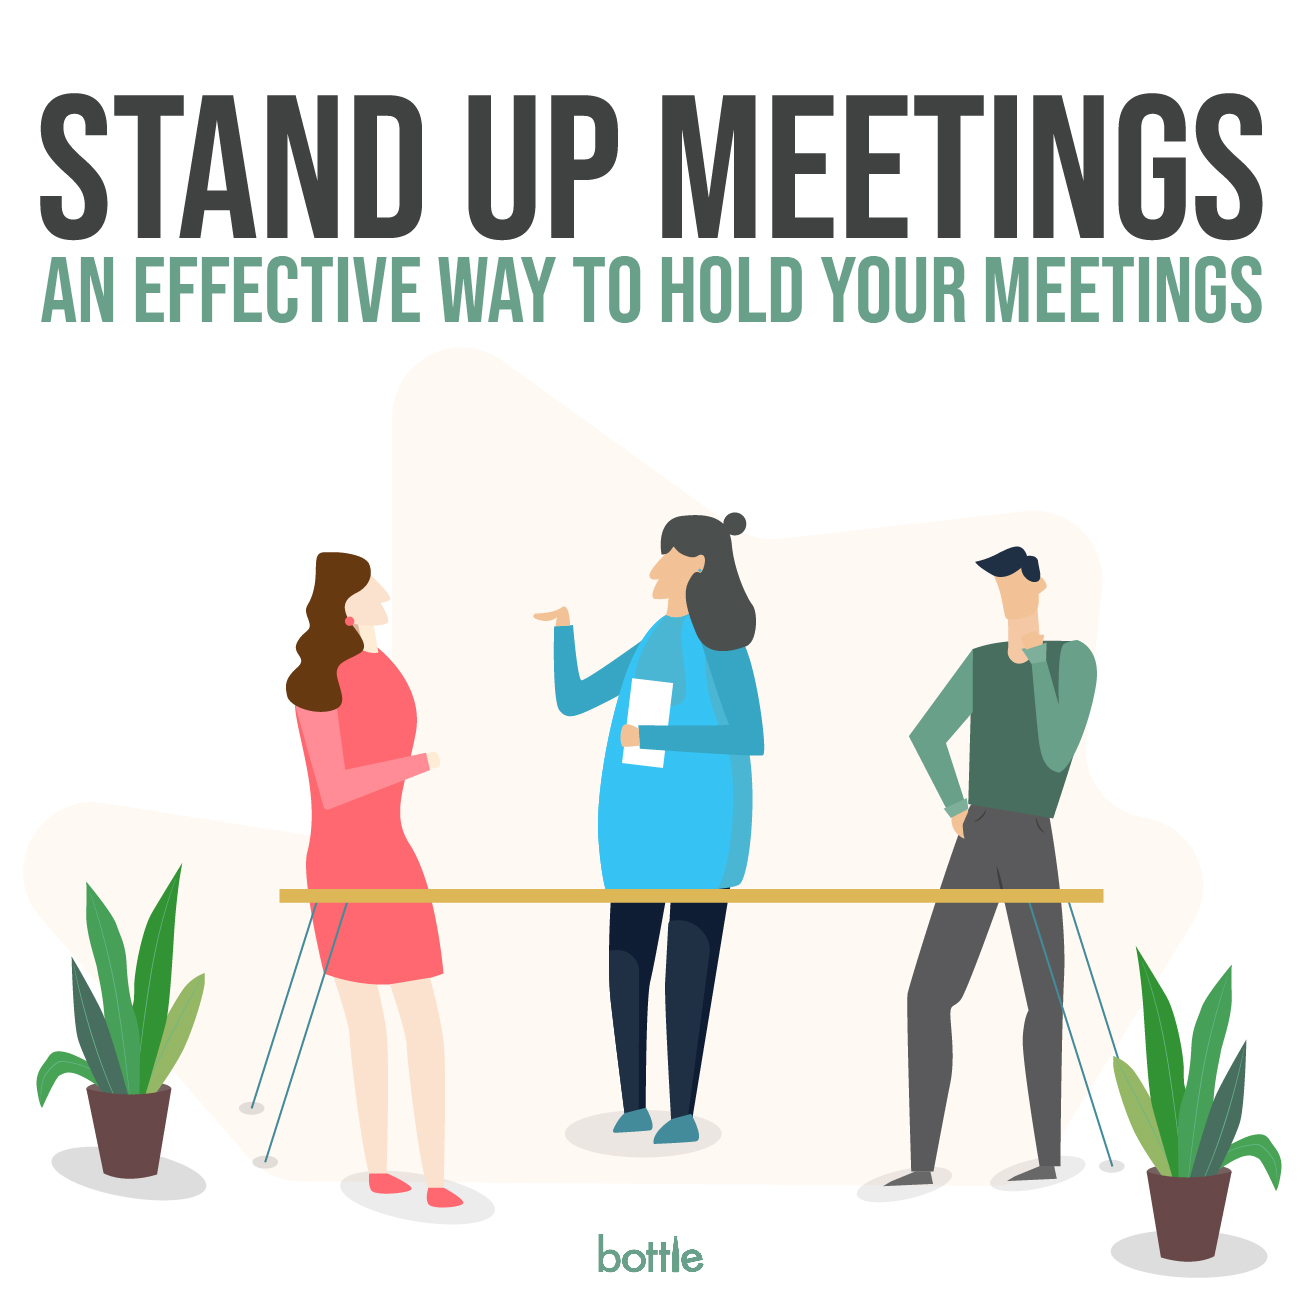 Stand Up Meetings: Why and How?